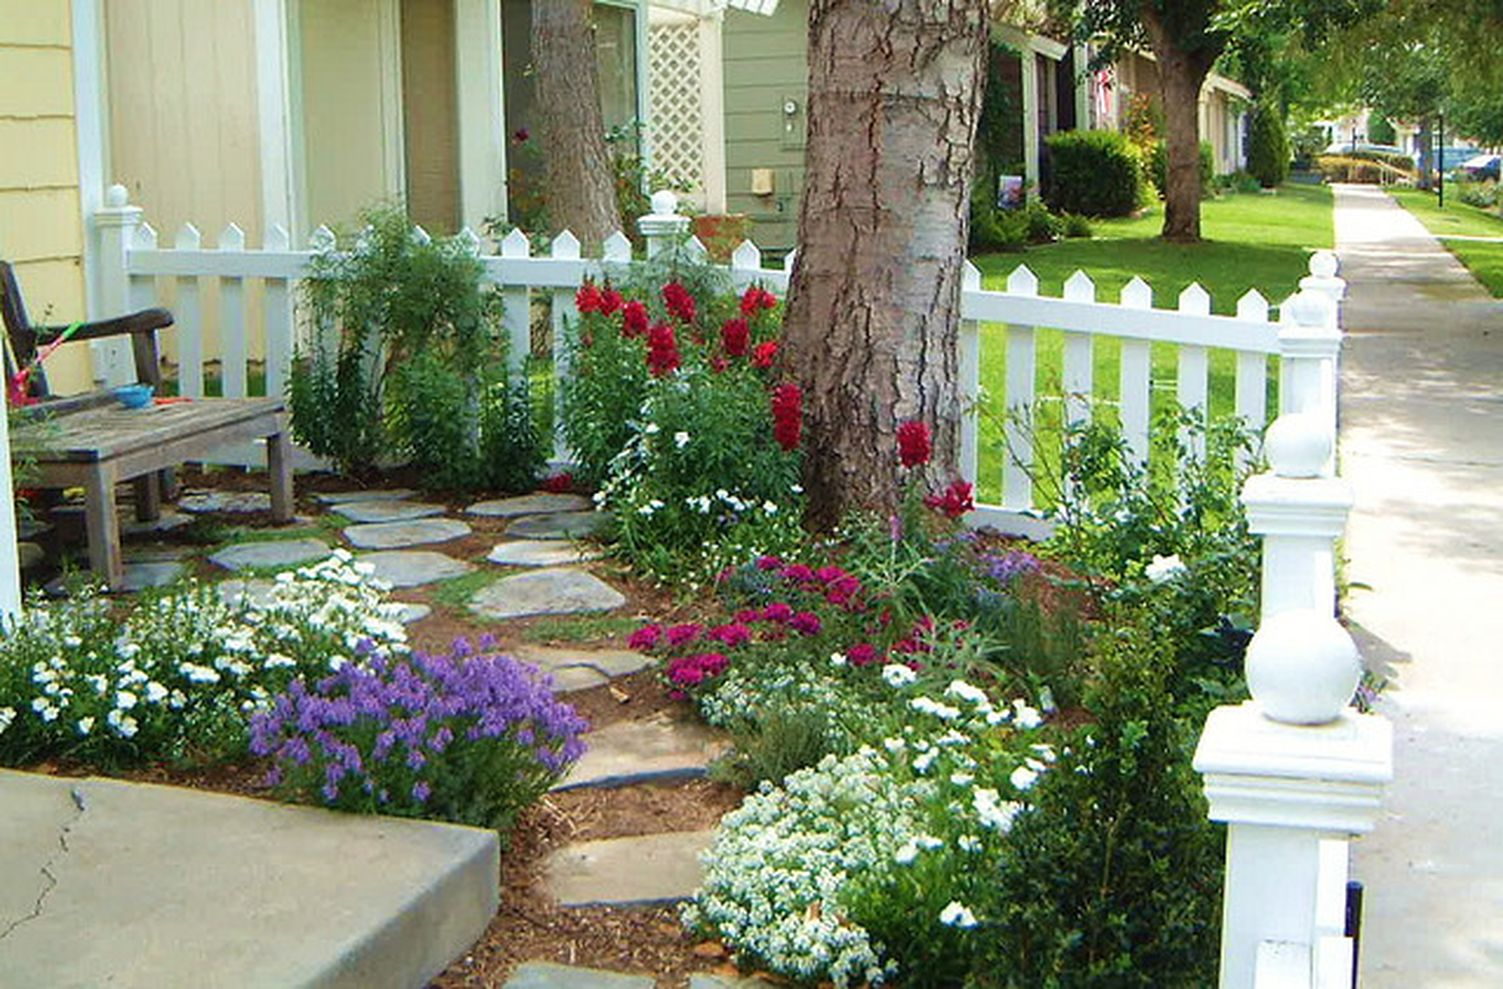 87 Cute and Simple Tiny Patio Garden Ideas - ROUNDECOR on Basic Patio Ideas id=62067